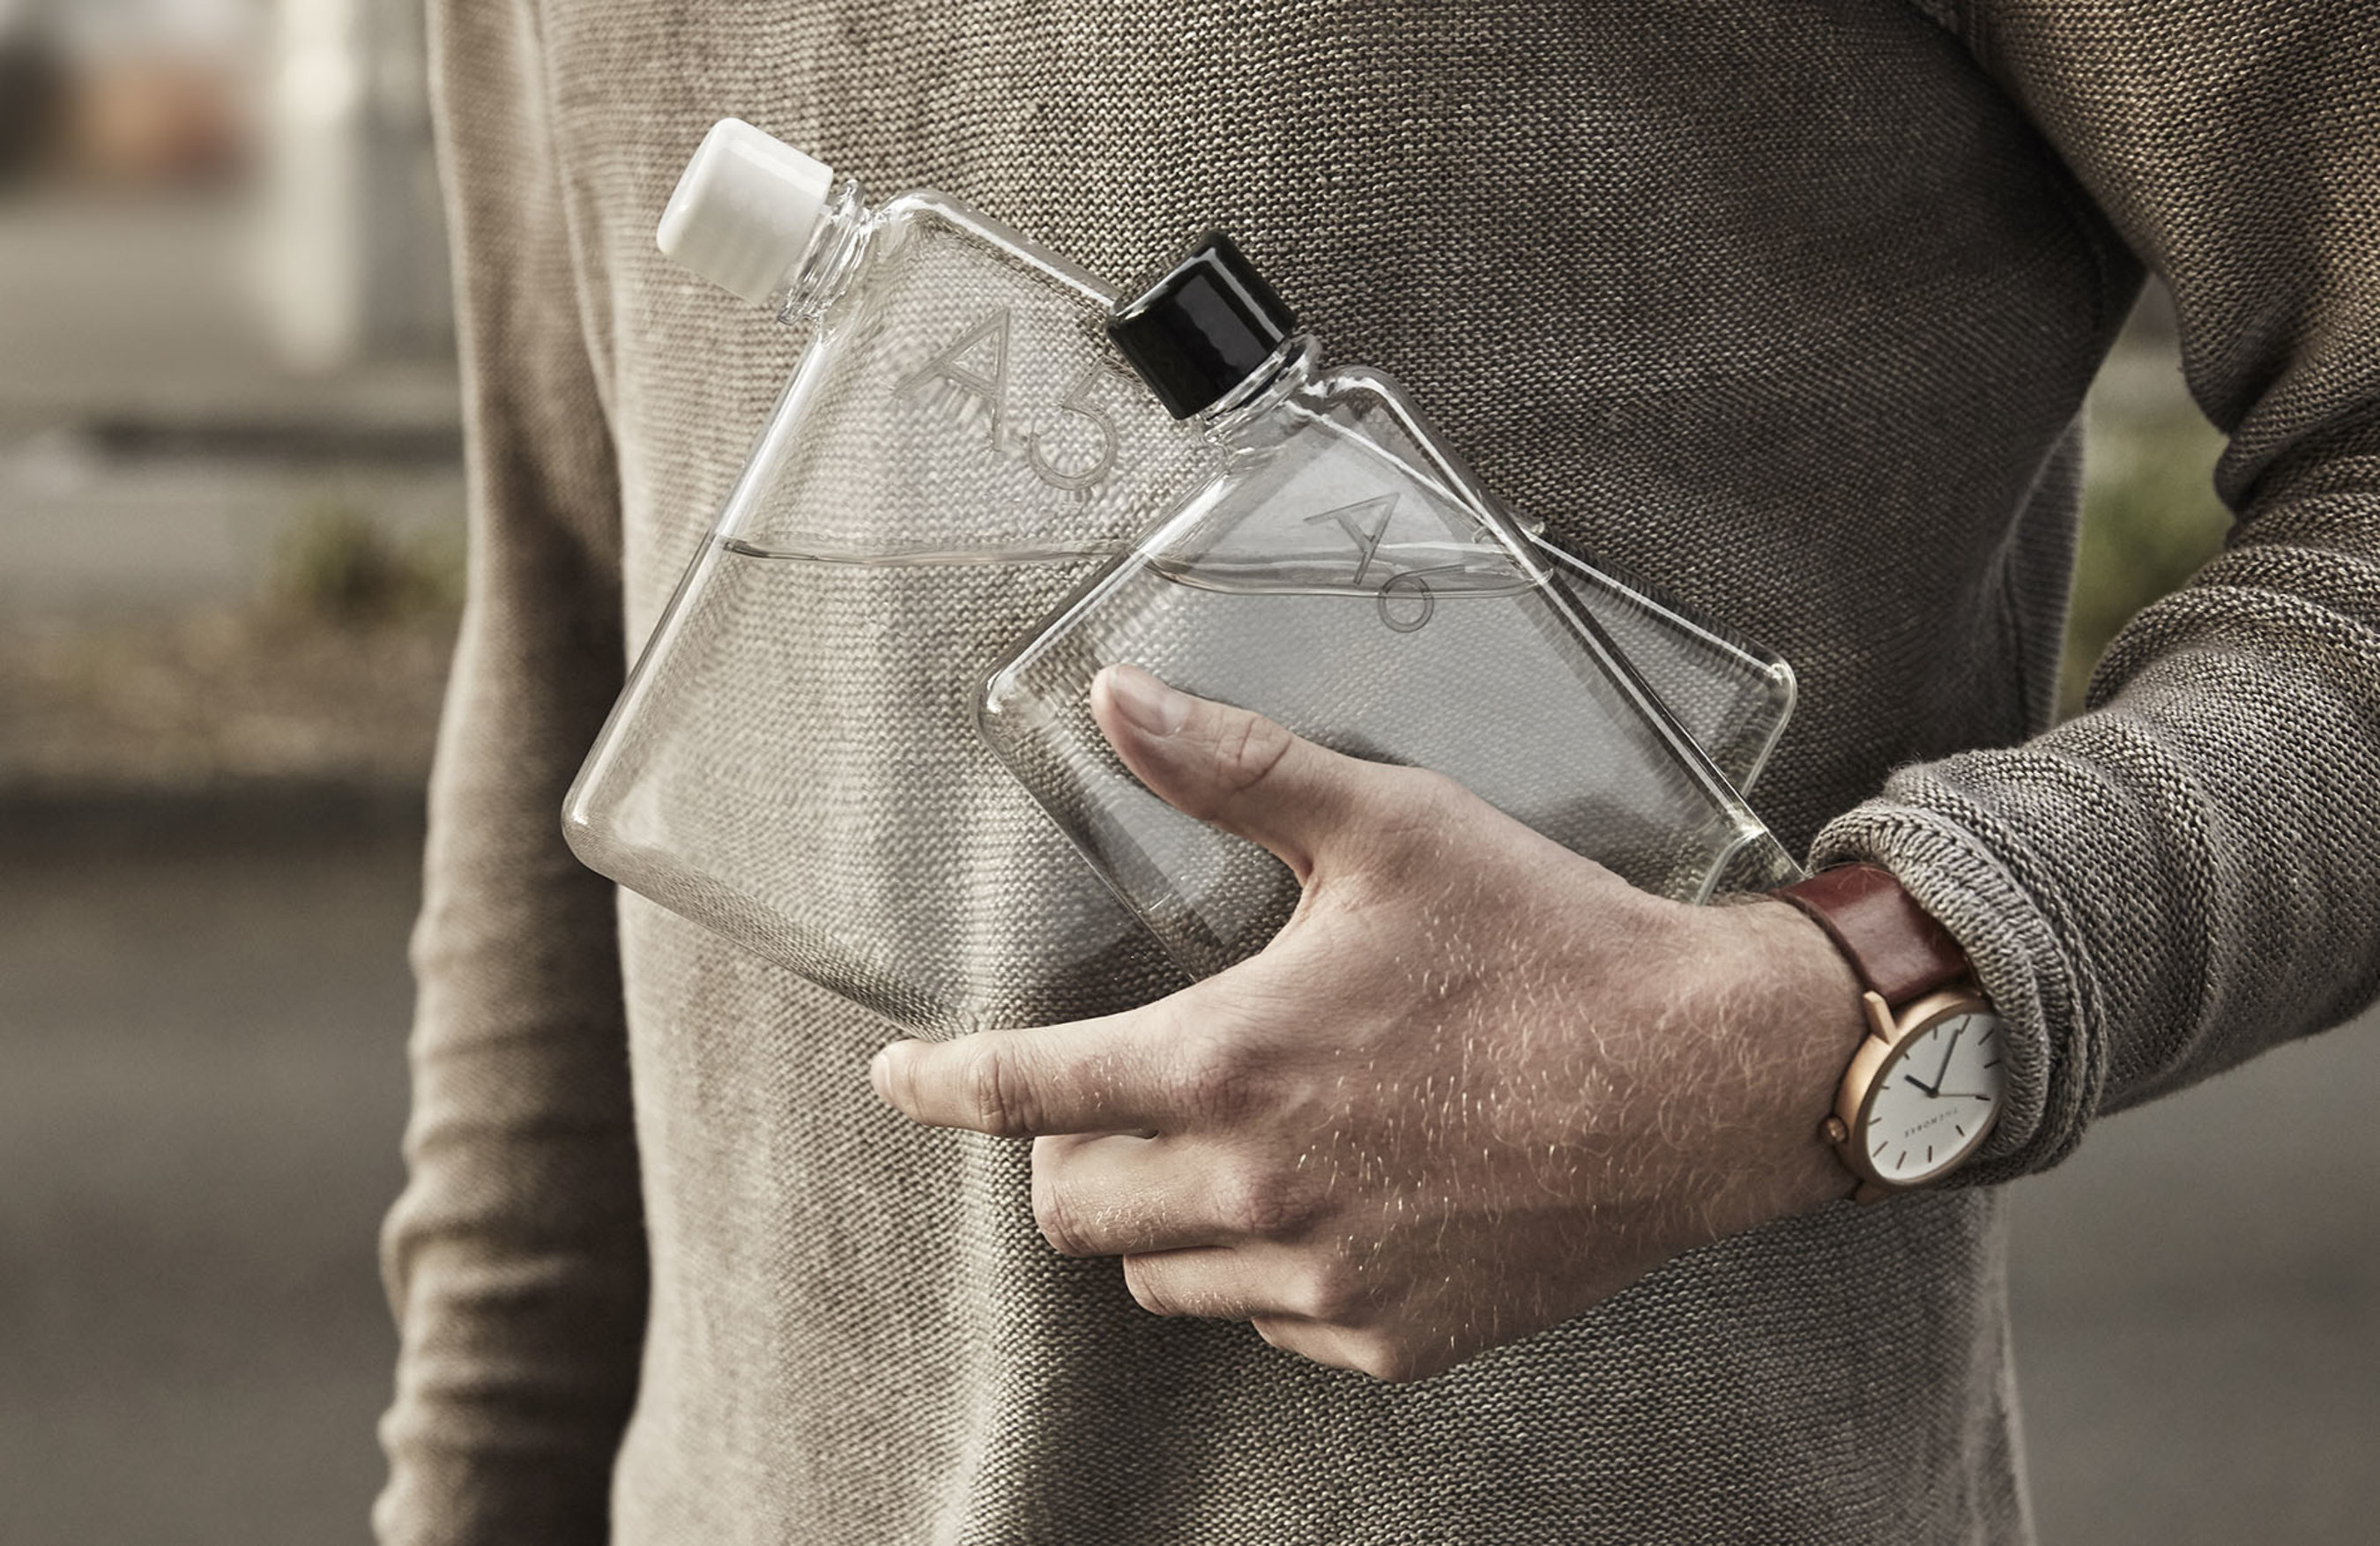 memobottle | Featured in the 2016 Oscars (R) gift bags | The memobottle is a premium, slim and reusable water ...